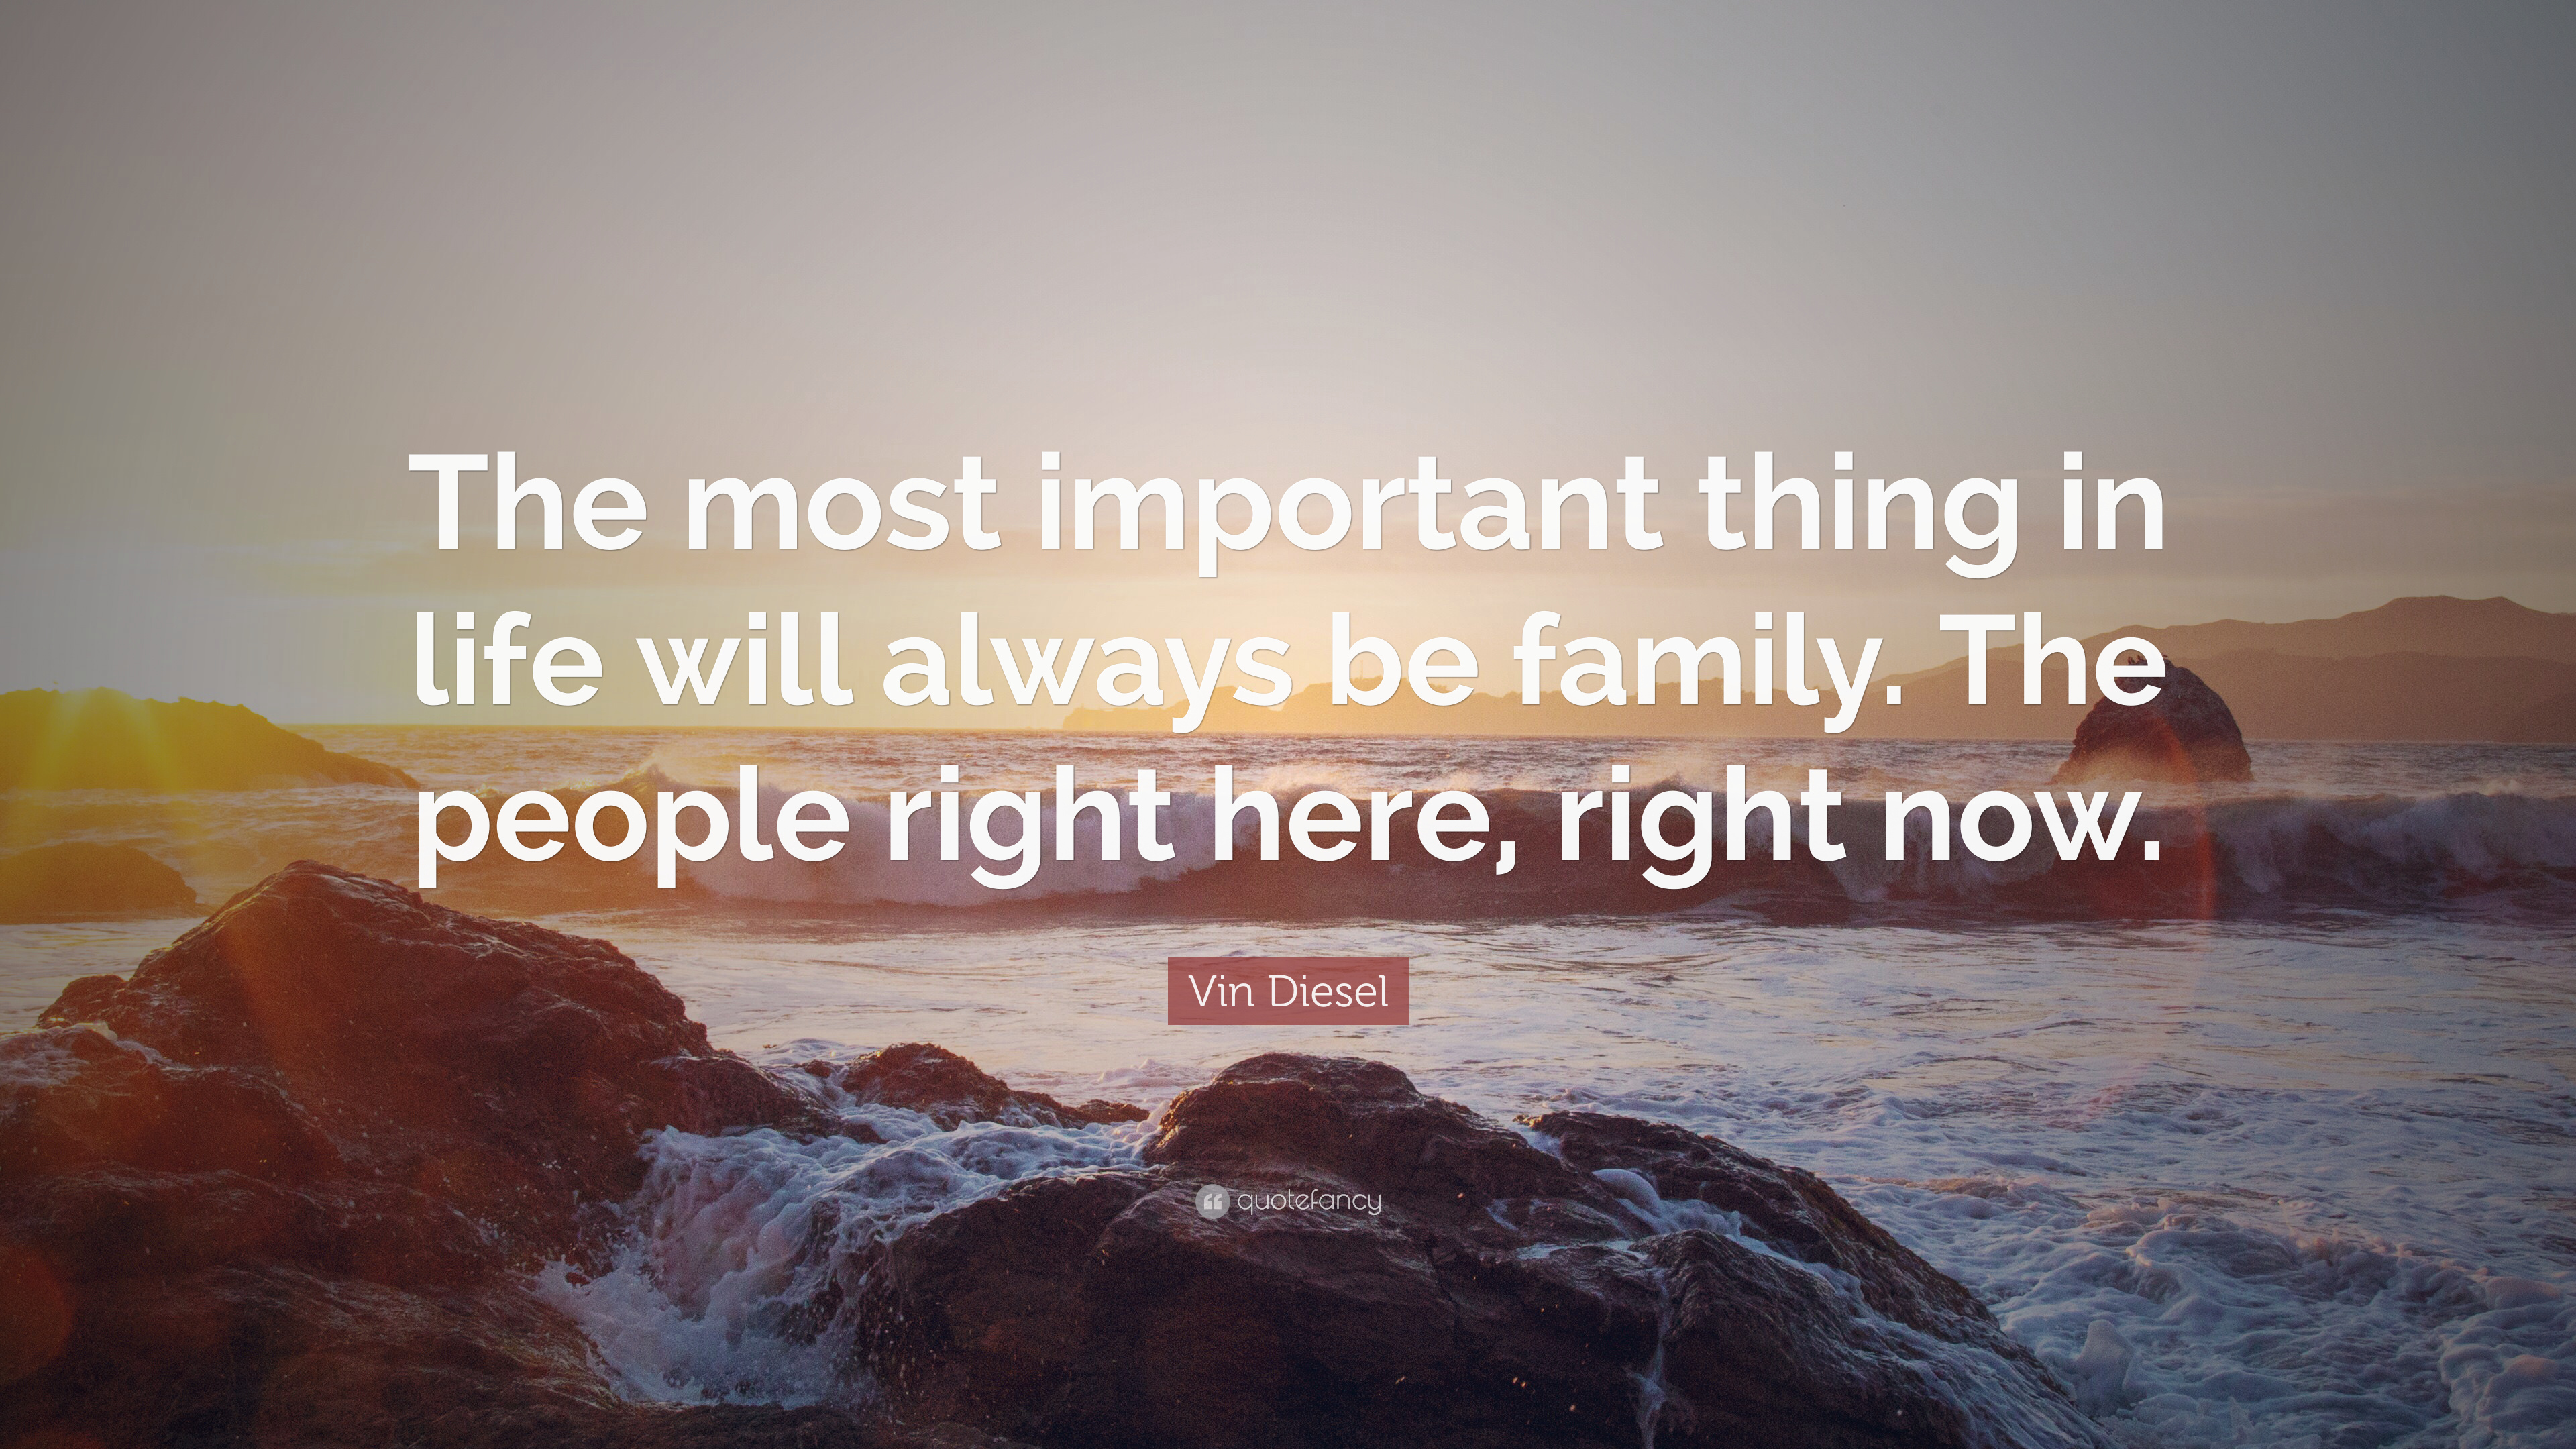 Vin Diesel Quote The Most Important Thing In Life Will Always Be